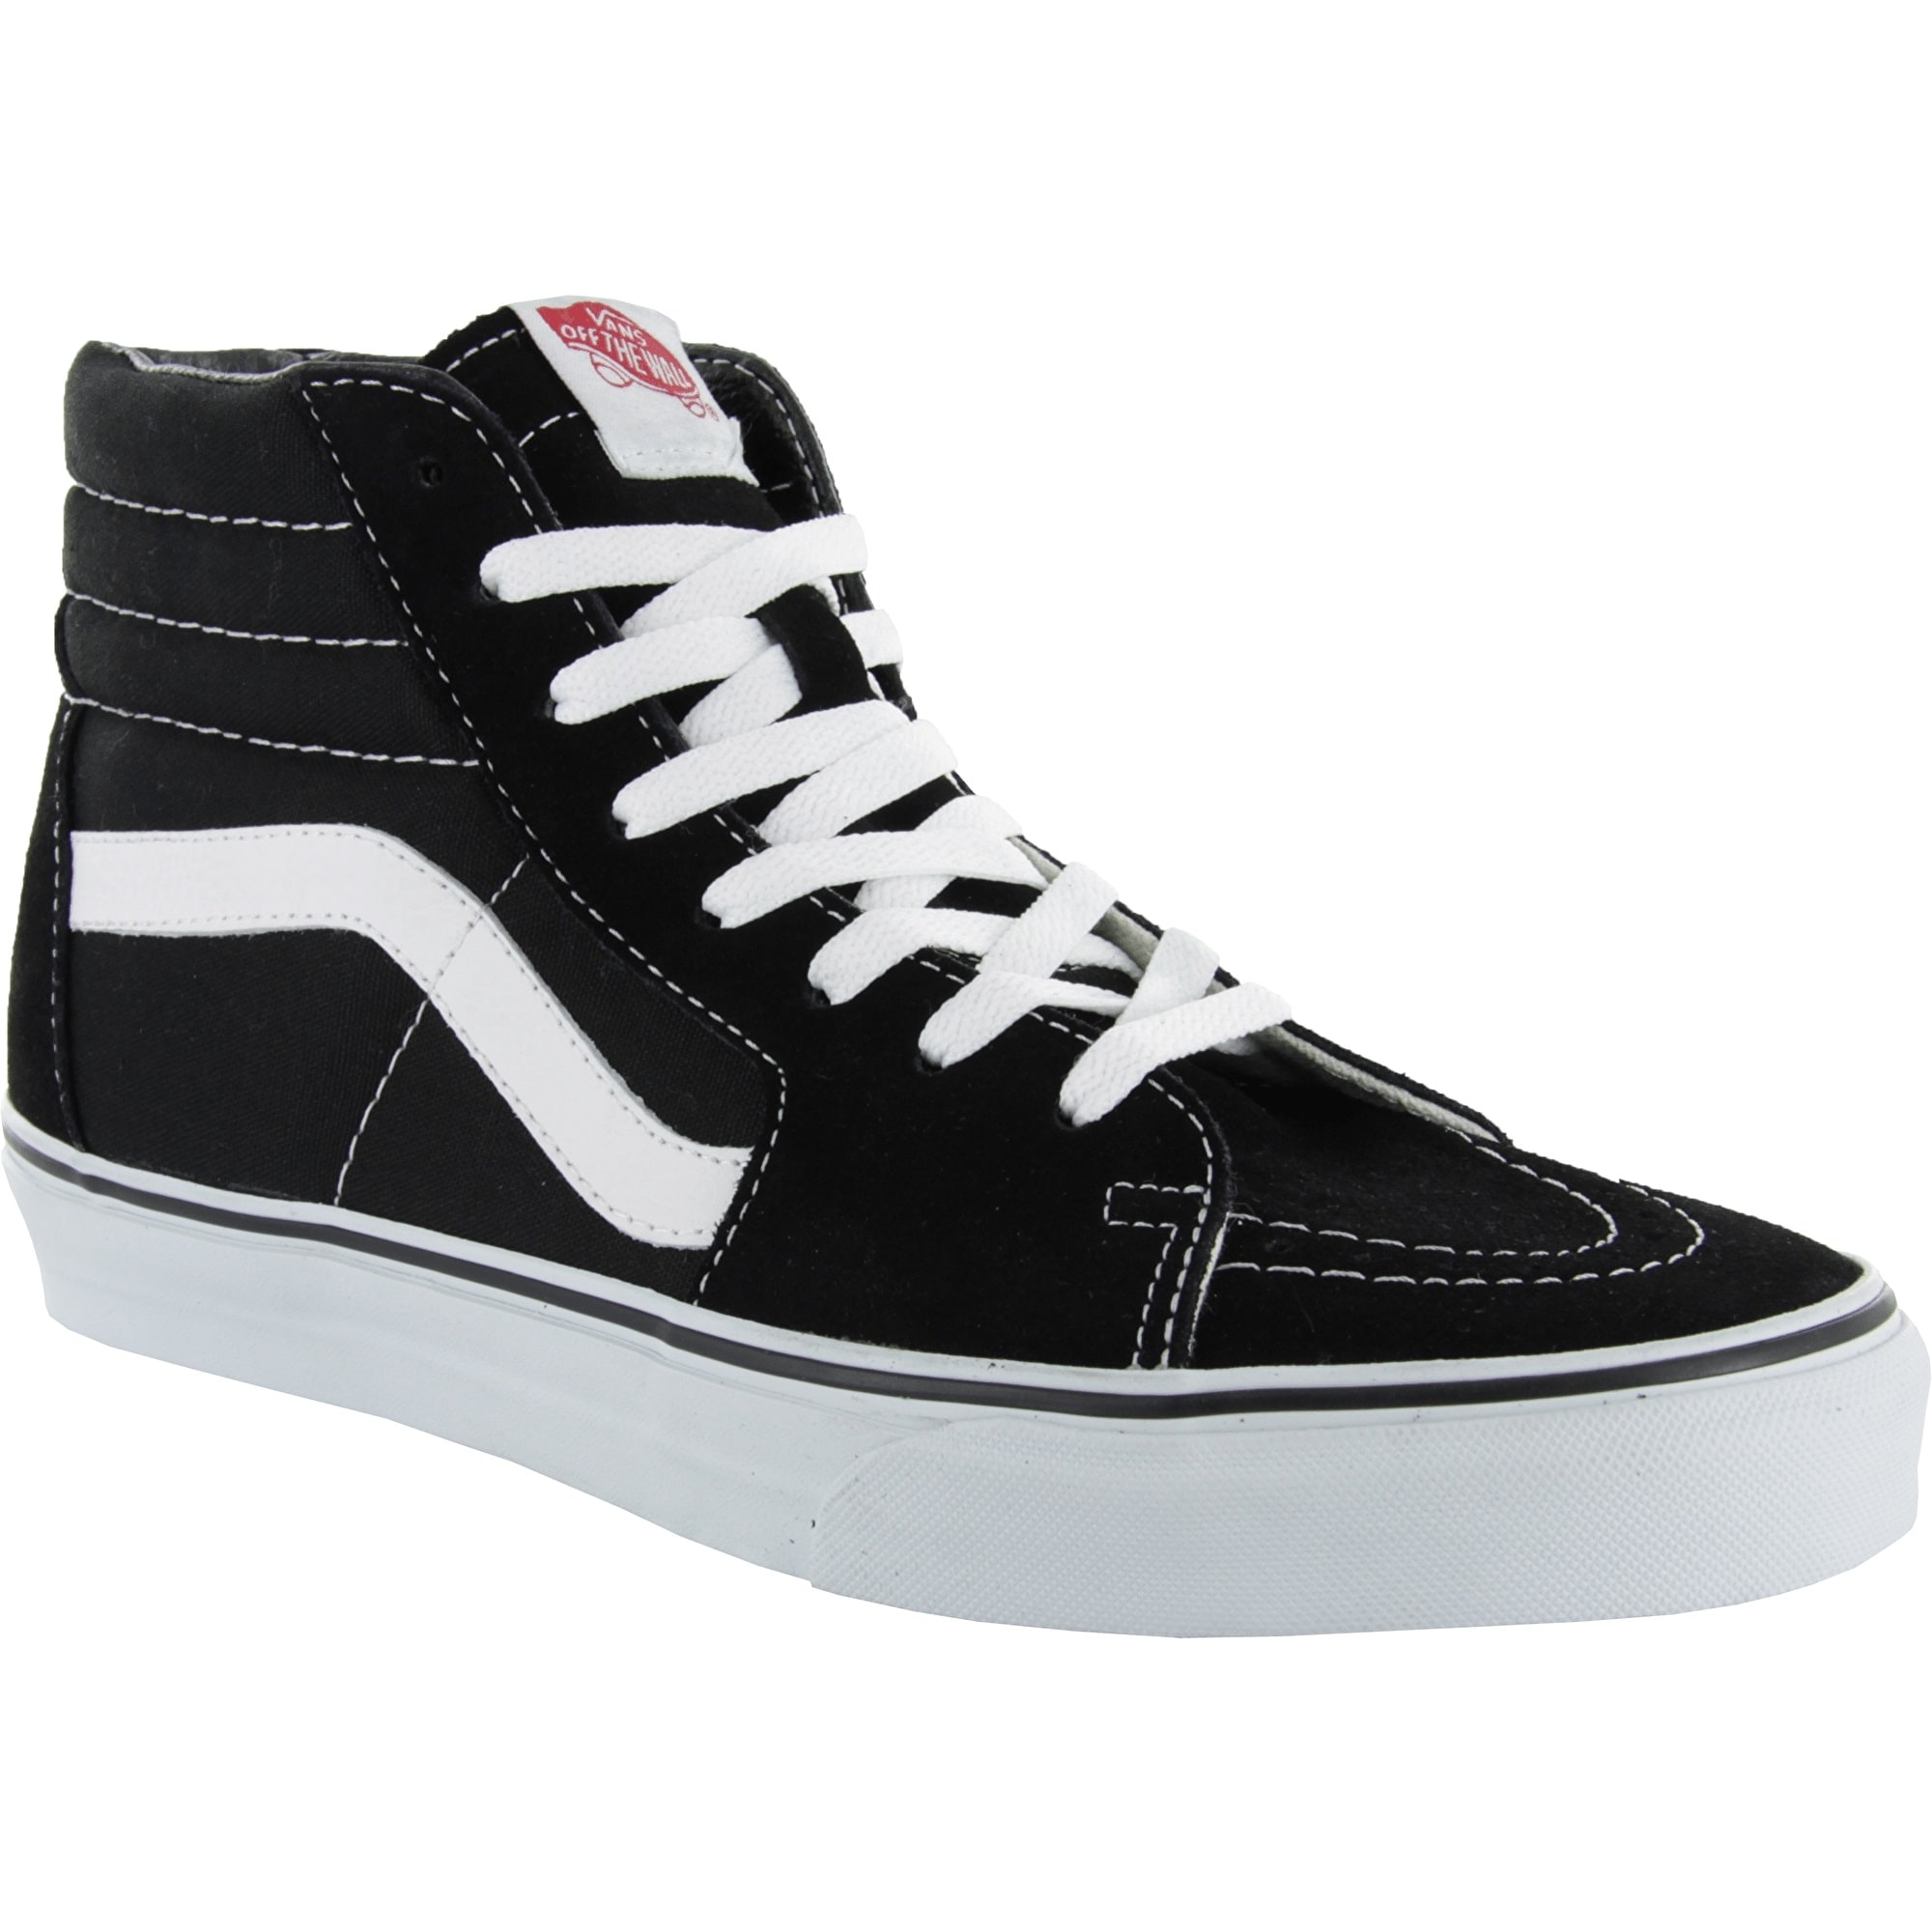 e43a8bd4daa303 Vans Sk8-Hi Skate Shoes - Black White